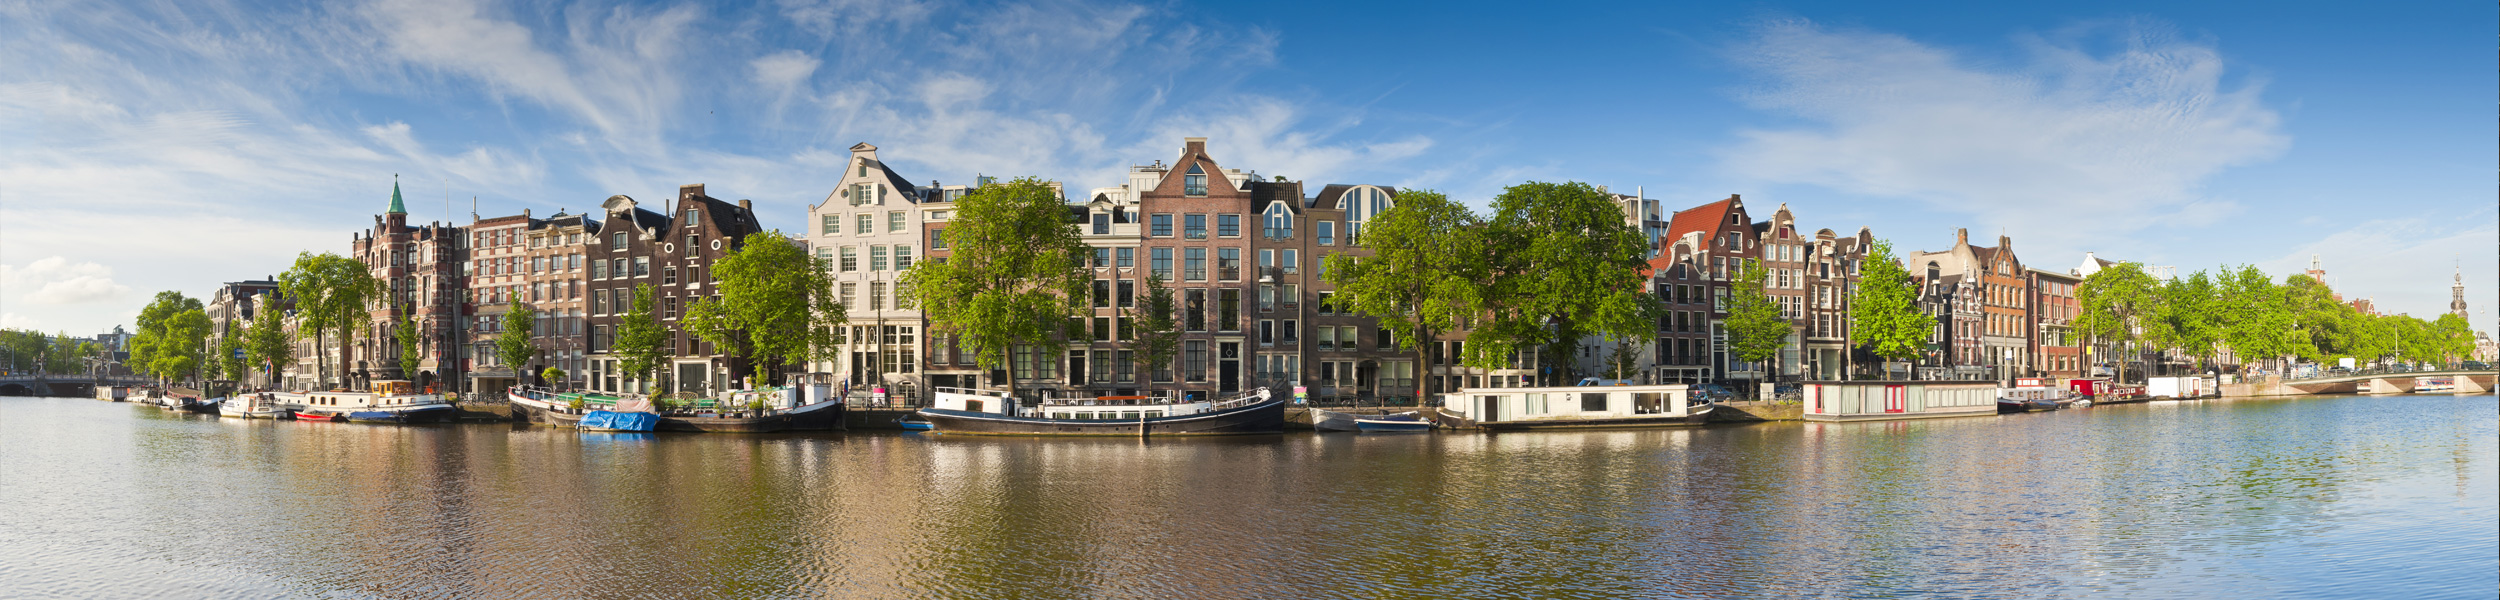 Senior PHP Developer Amsterdam or Rotterdam, the Netherlands